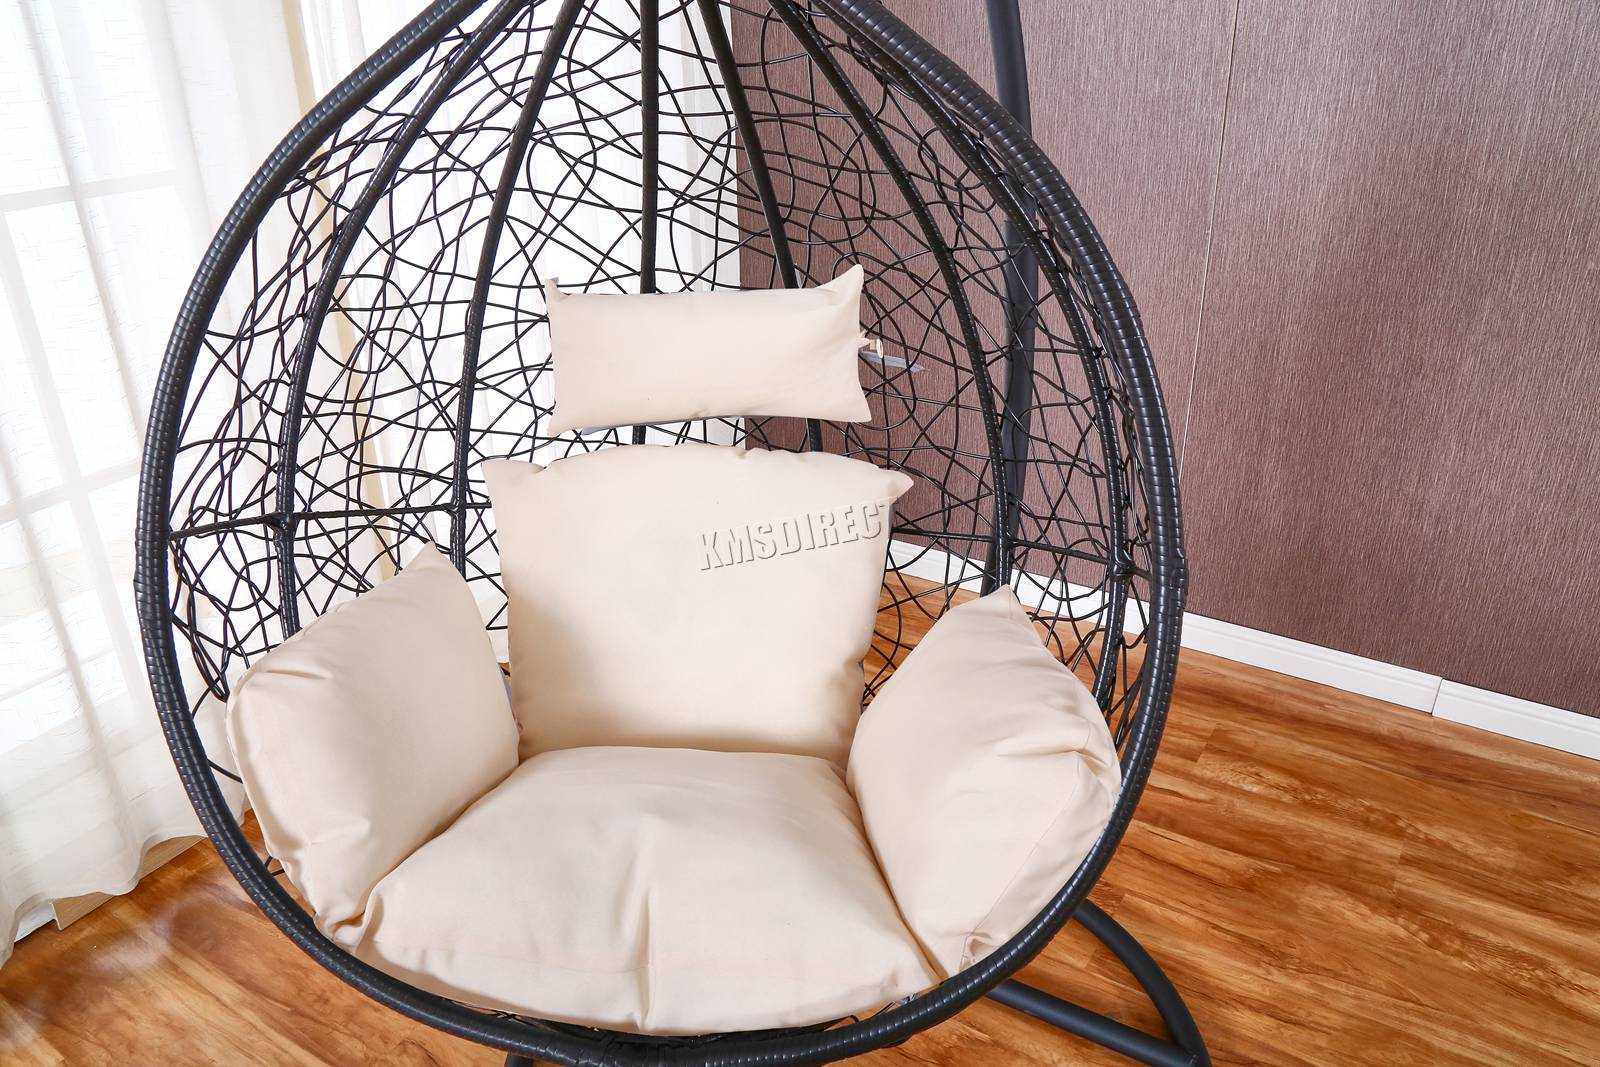 WestWood-Egg-Swing-Hanging-Chair-Hammock-Wave-With-Cushion-Rattan-Wicker-ESWR01 thumbnail 13